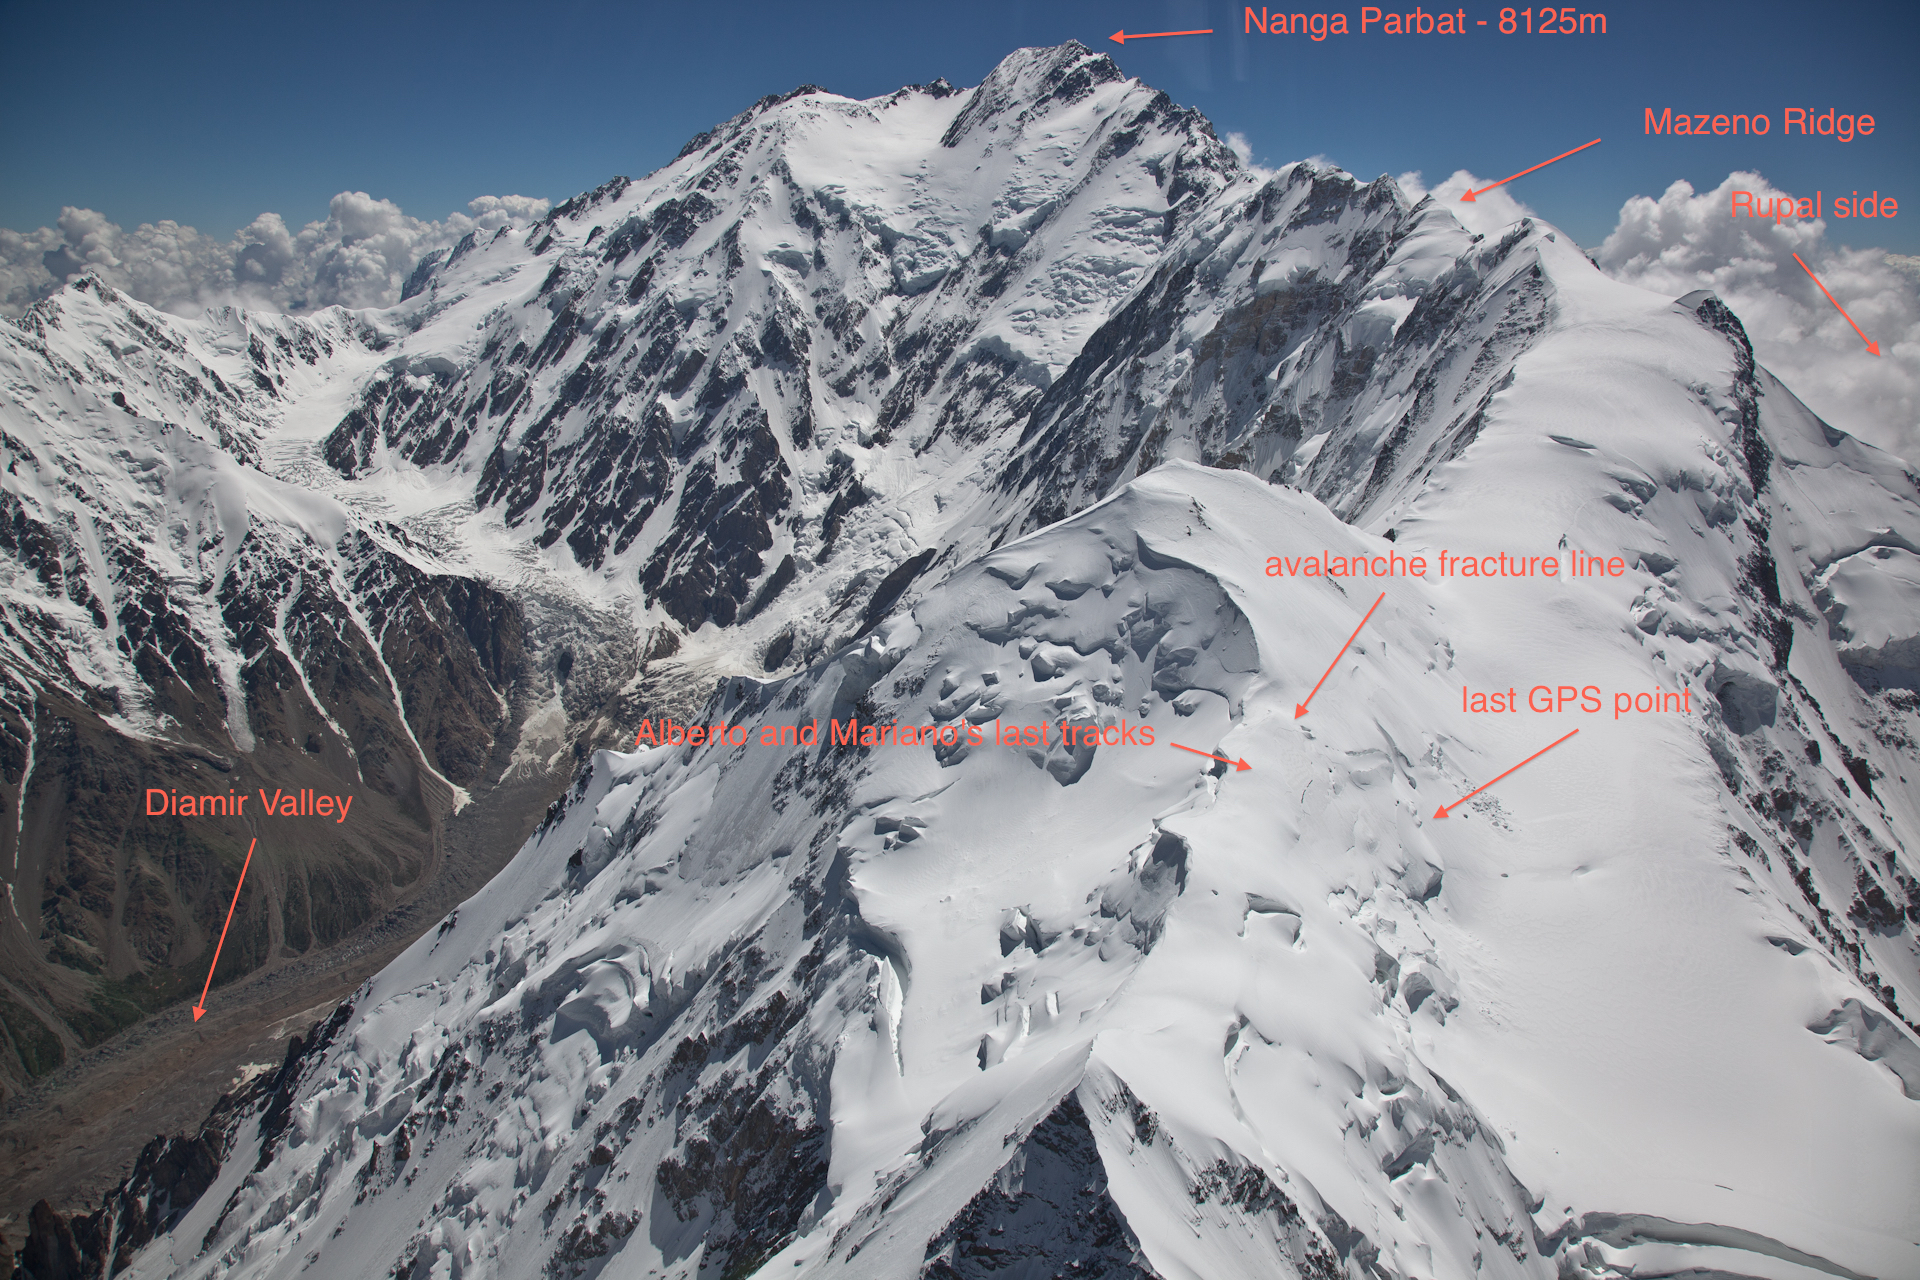 This photo taken during the helicopter search on July 1 shows where Mariano Galvan and Alberto Zerain disappeared on Nanga Parbat's Mazeno Ridge. [Photo] Alex Gavan